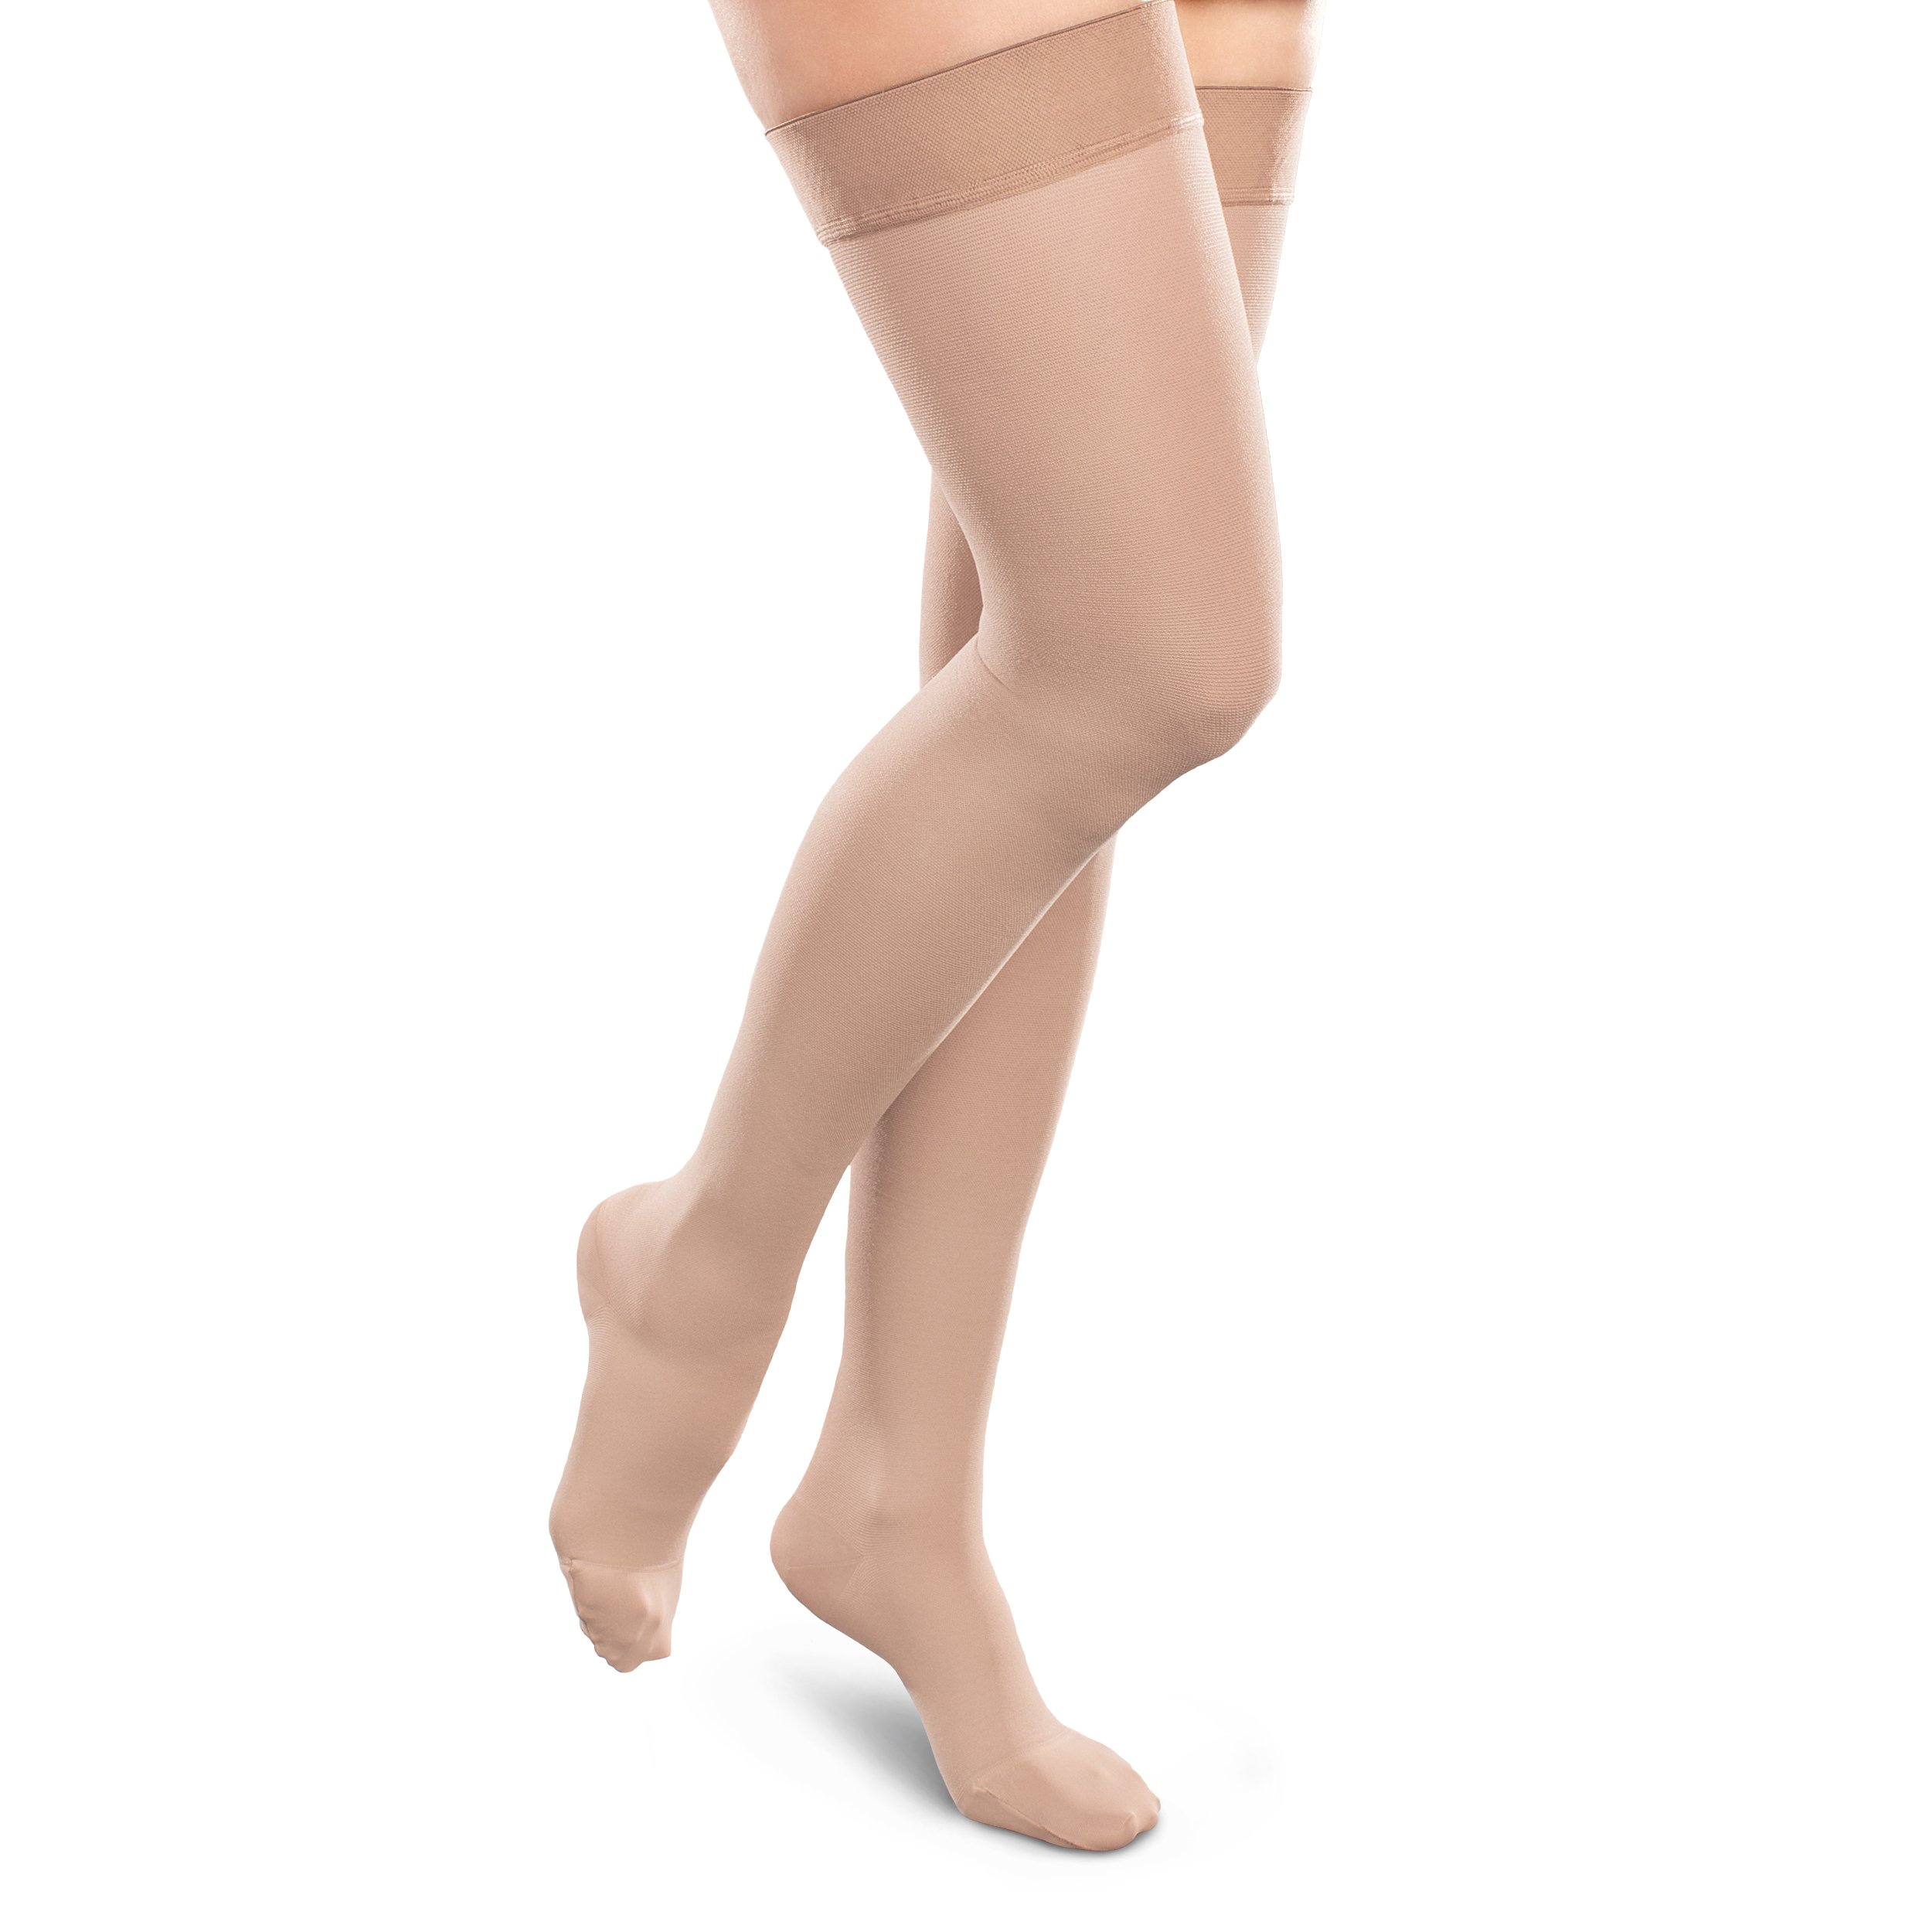 Therafirm Opaque Women's Support Thigh High Stockings - 15-20mmHg Mild Compression Nylons (Natural, Medium Long)